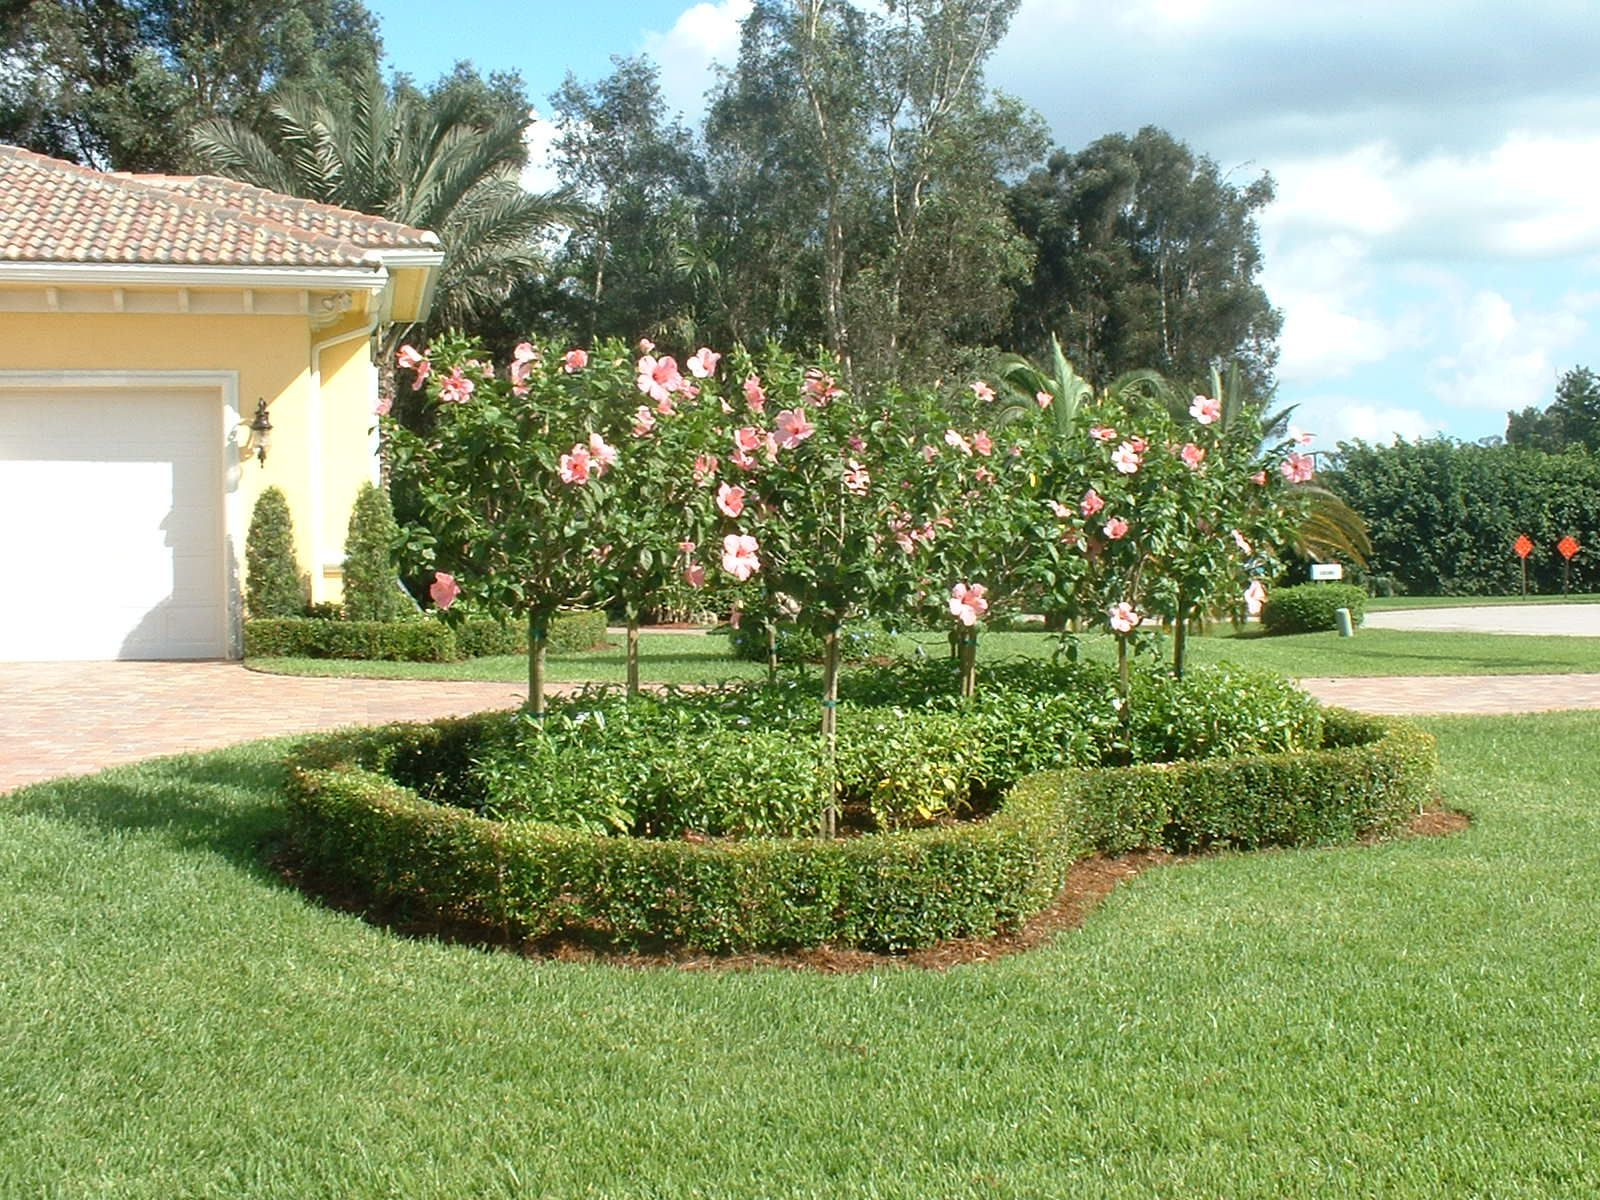 Florida landscaping ideas for backyard ztil news Florida landscape design ideas